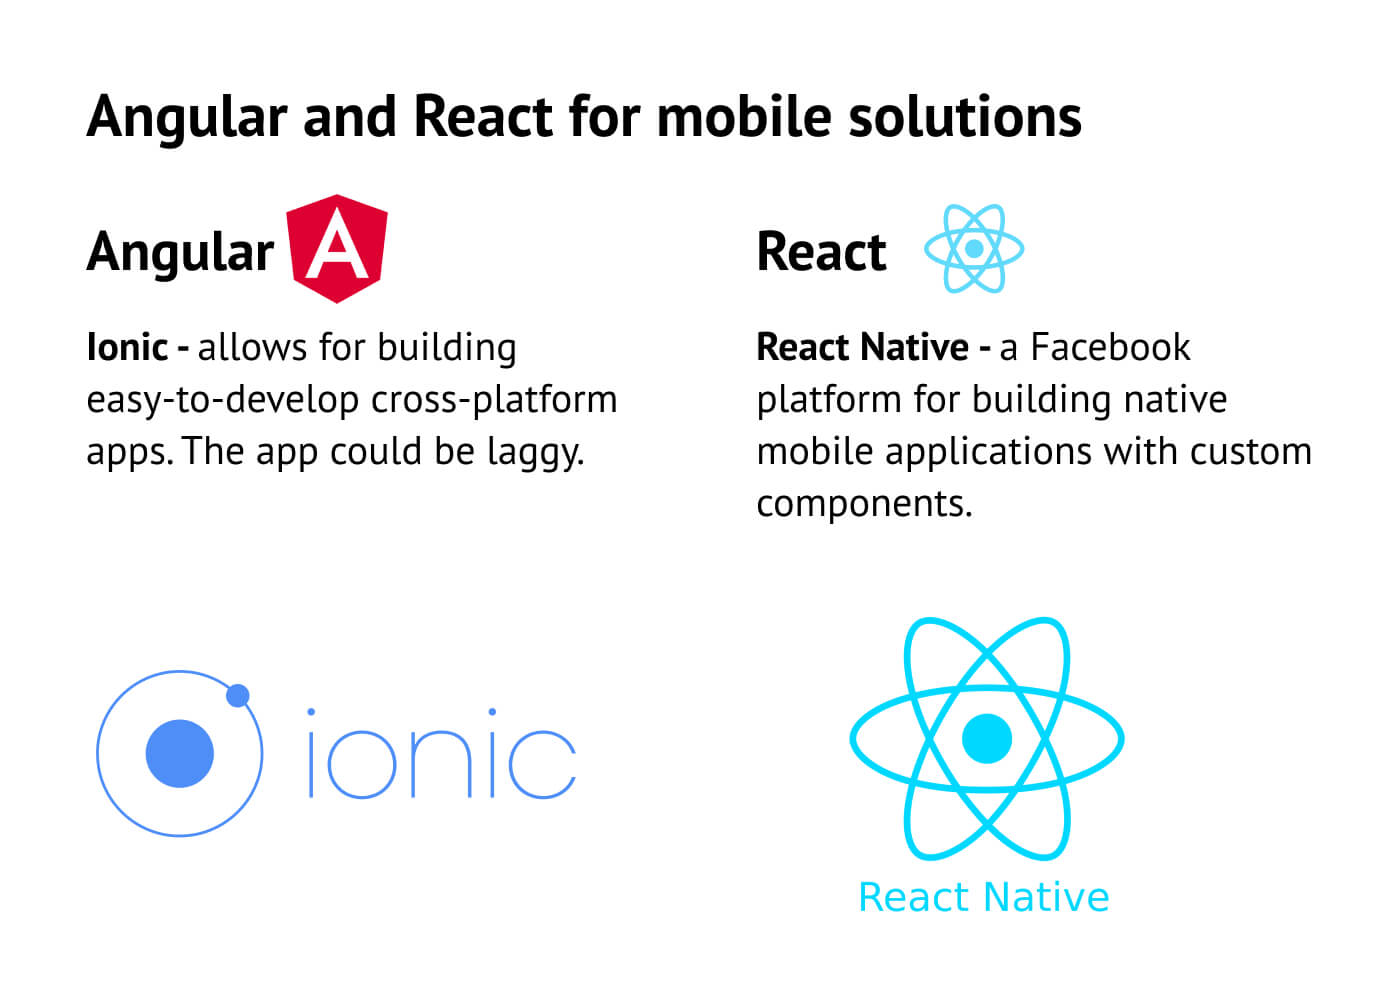 What Angular and React offer for mobile solutions